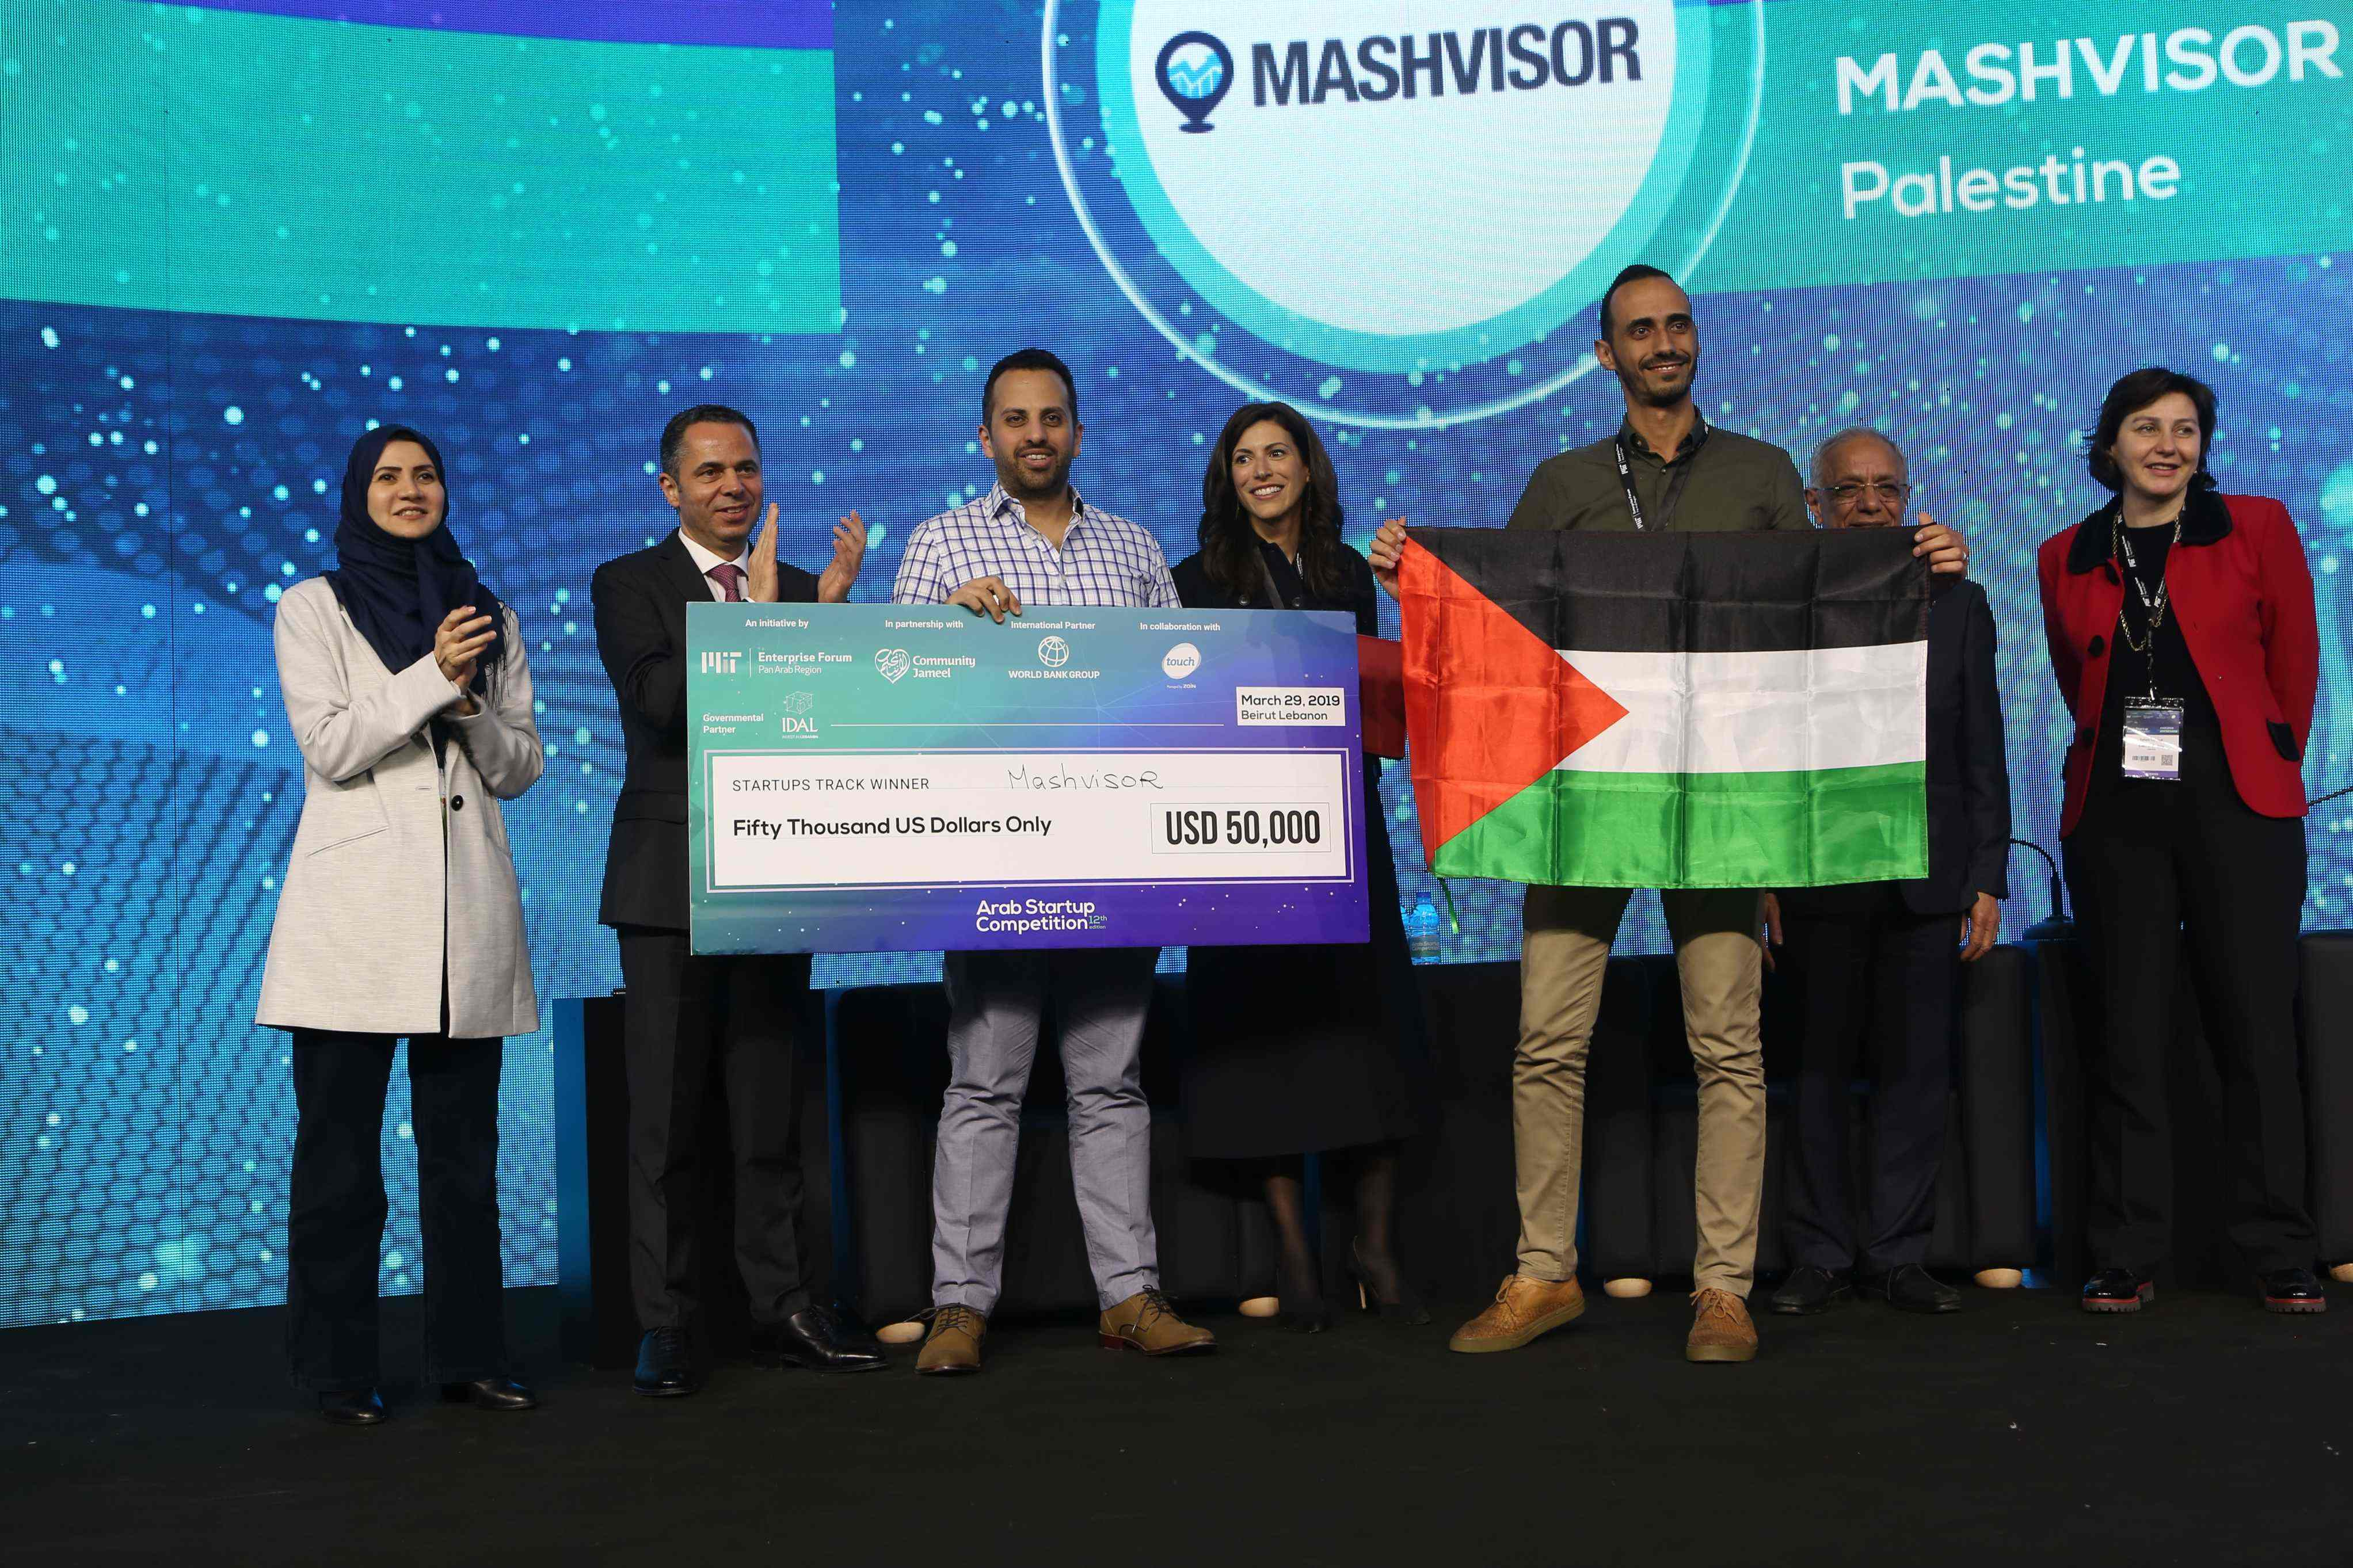 Mashvisor team accepting their prize during the award ceremony and conference of the 12th edition of MITEF's Arab Startup Competition